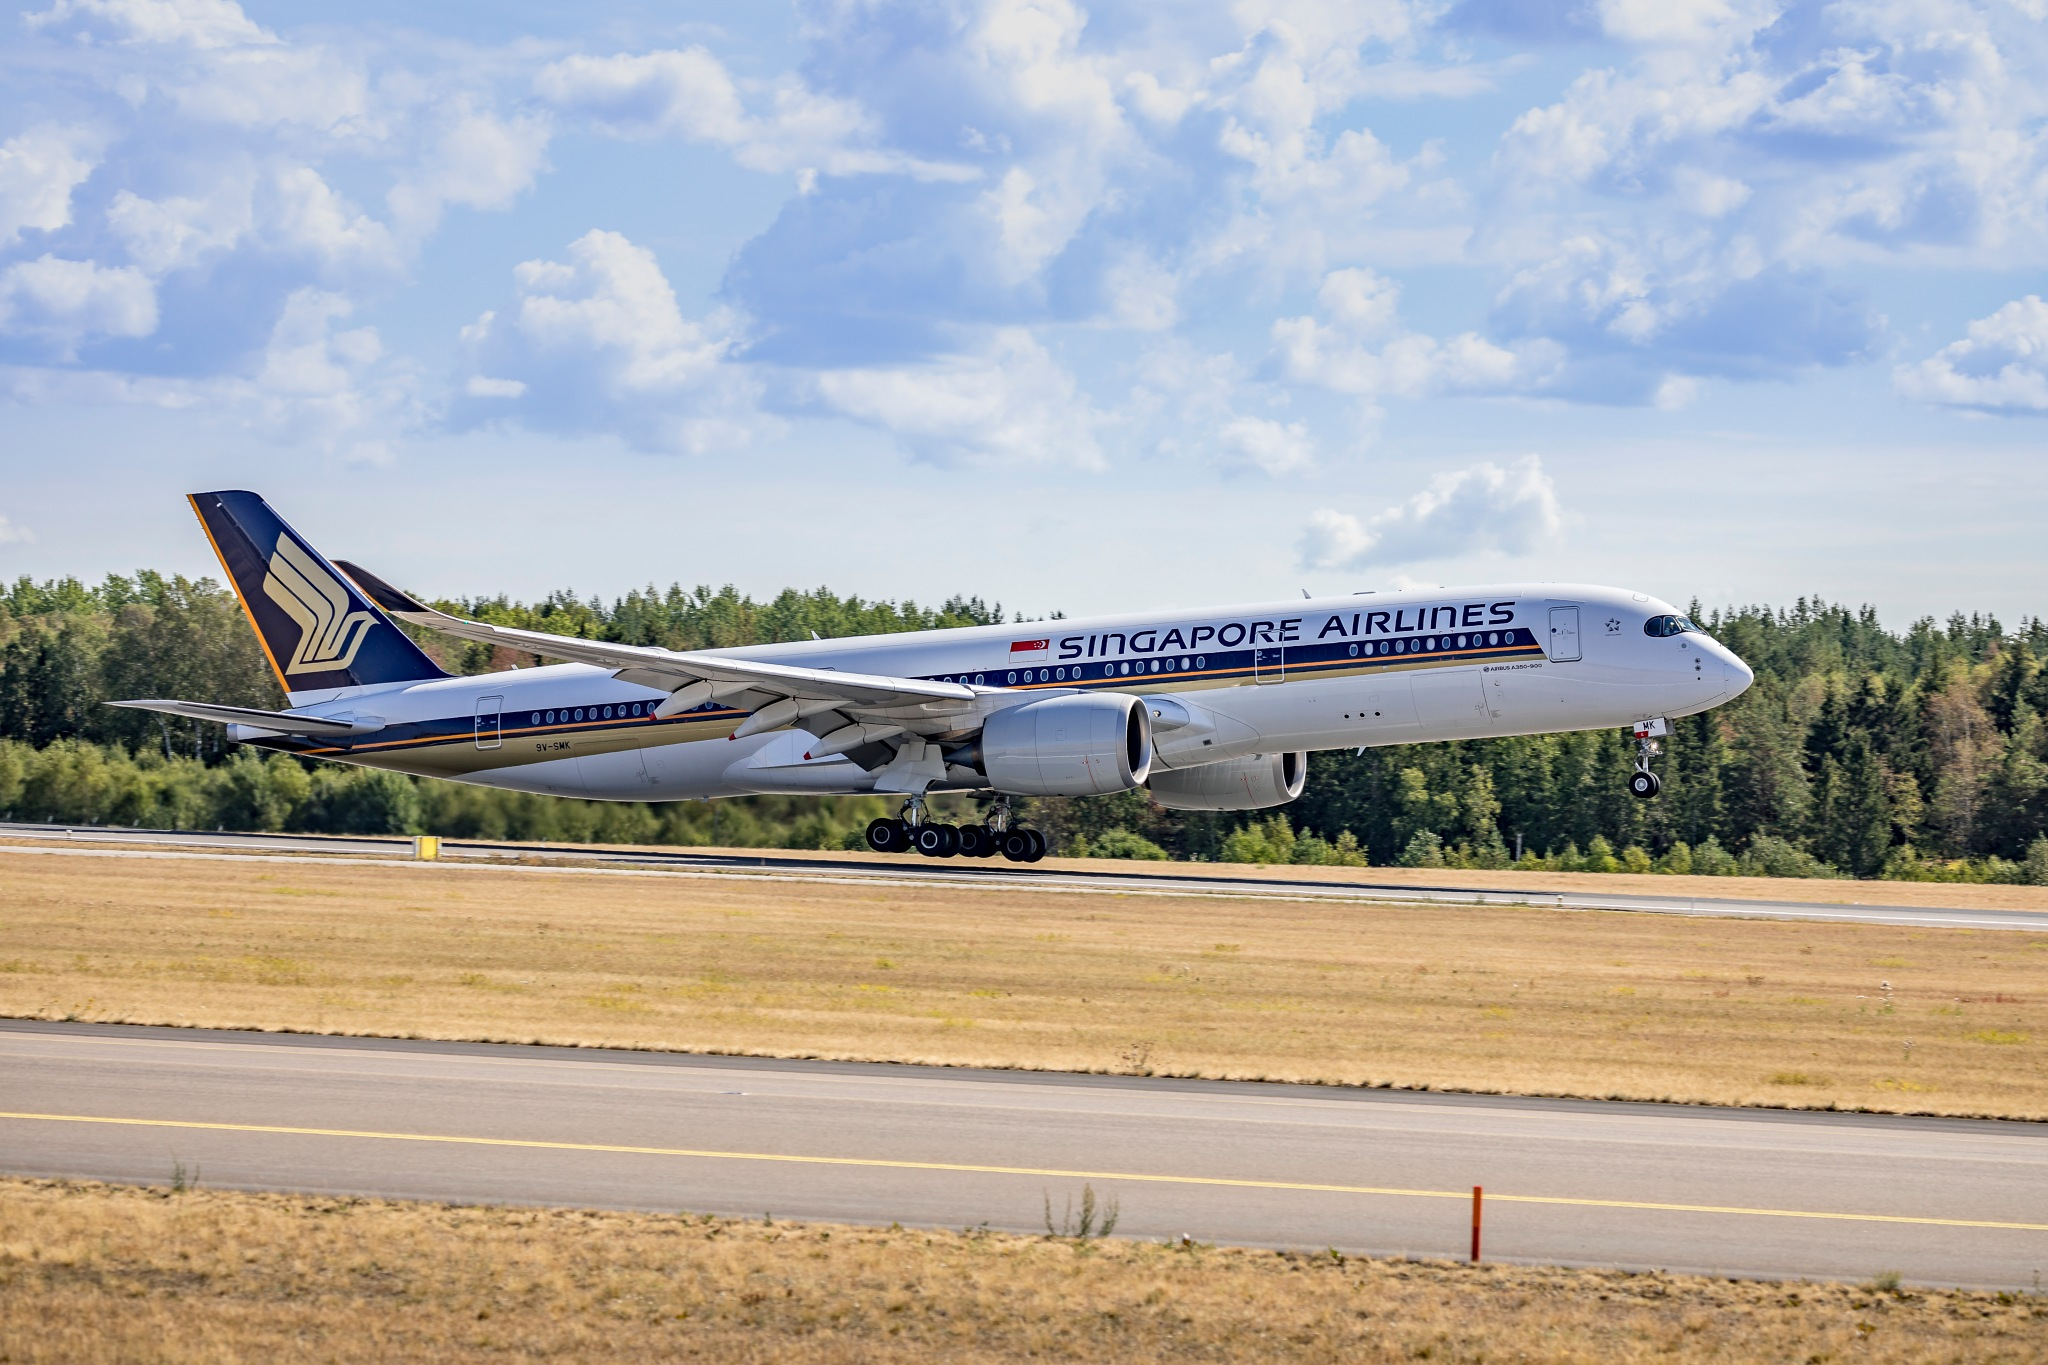 Liftoff for Singapore Airlines by Kim Jonsson